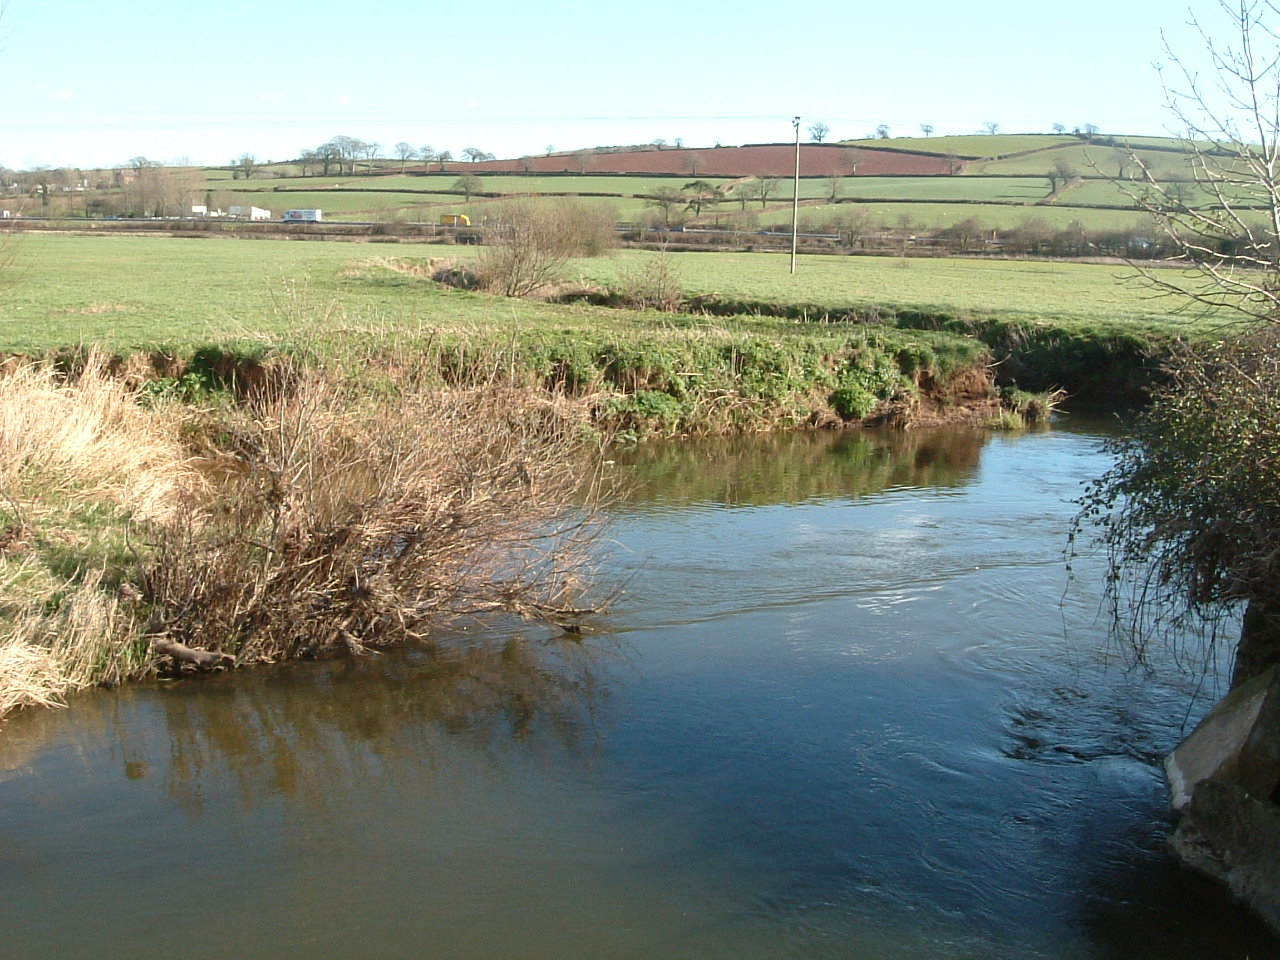 Eroded river bank